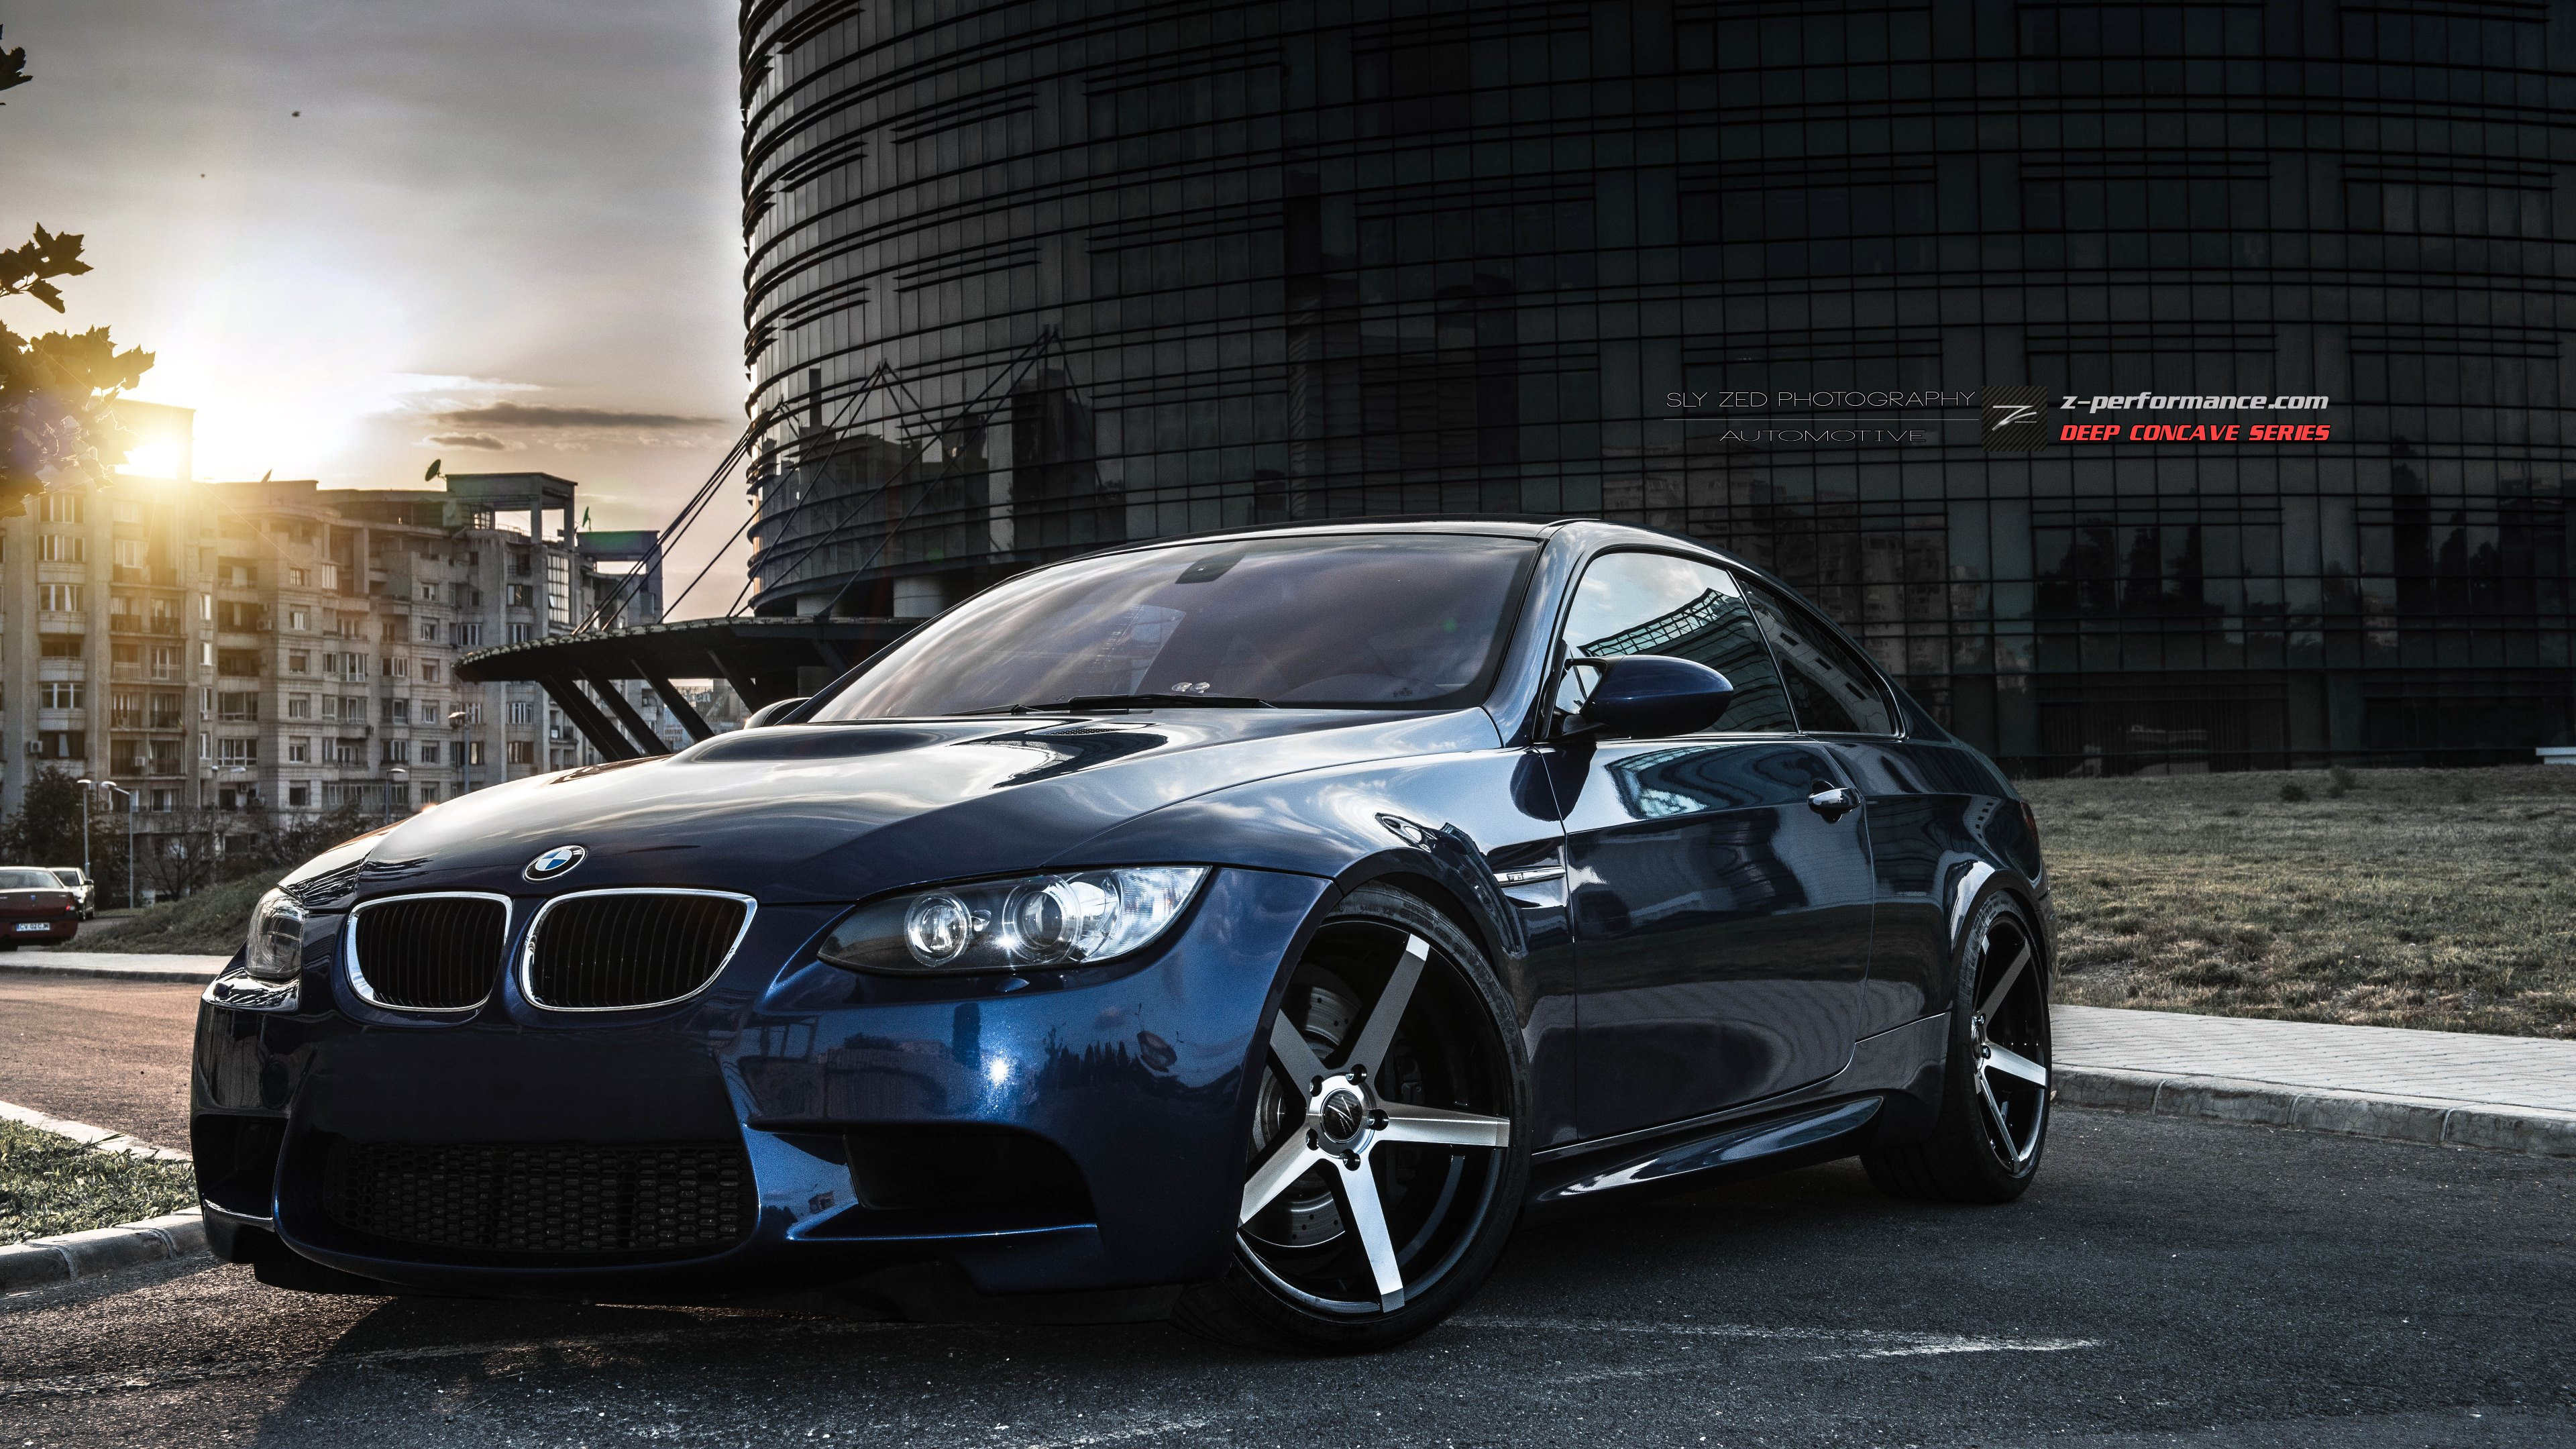 BMW E92 M3 Wallpapers HD Wallpapers 3840x2160